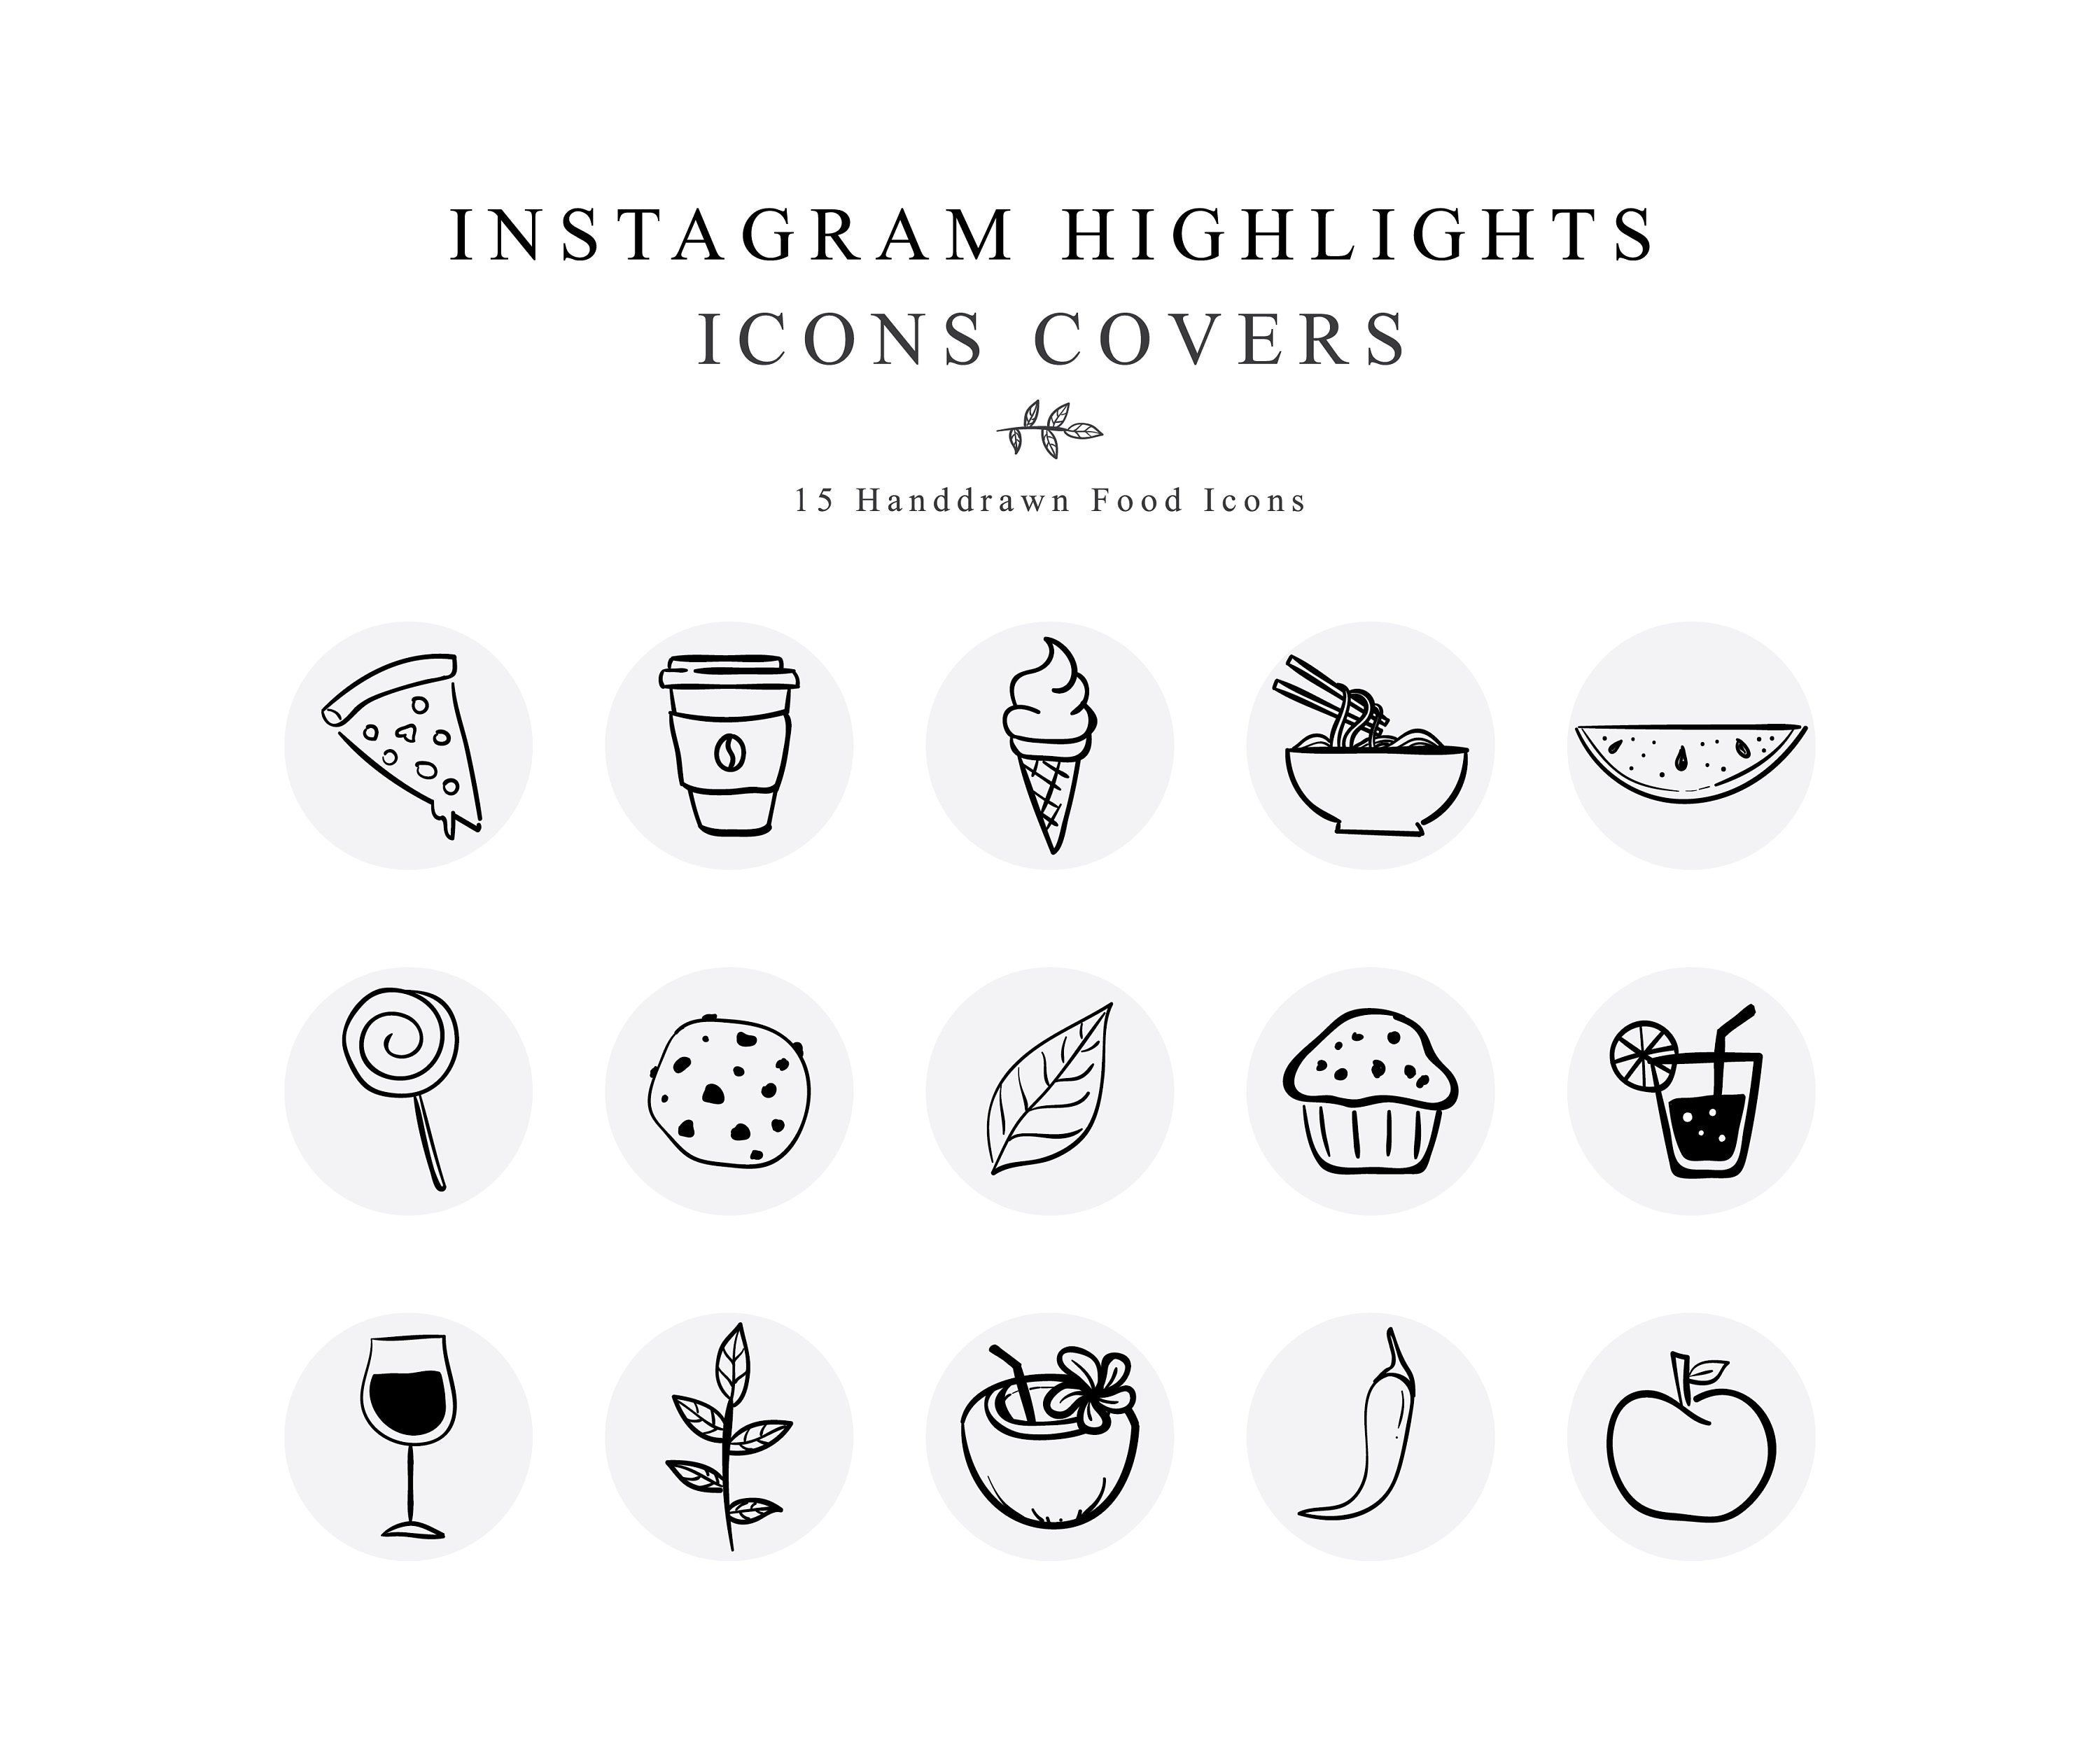 Instagram Story Highlights Cover Icons Food Handdrawn